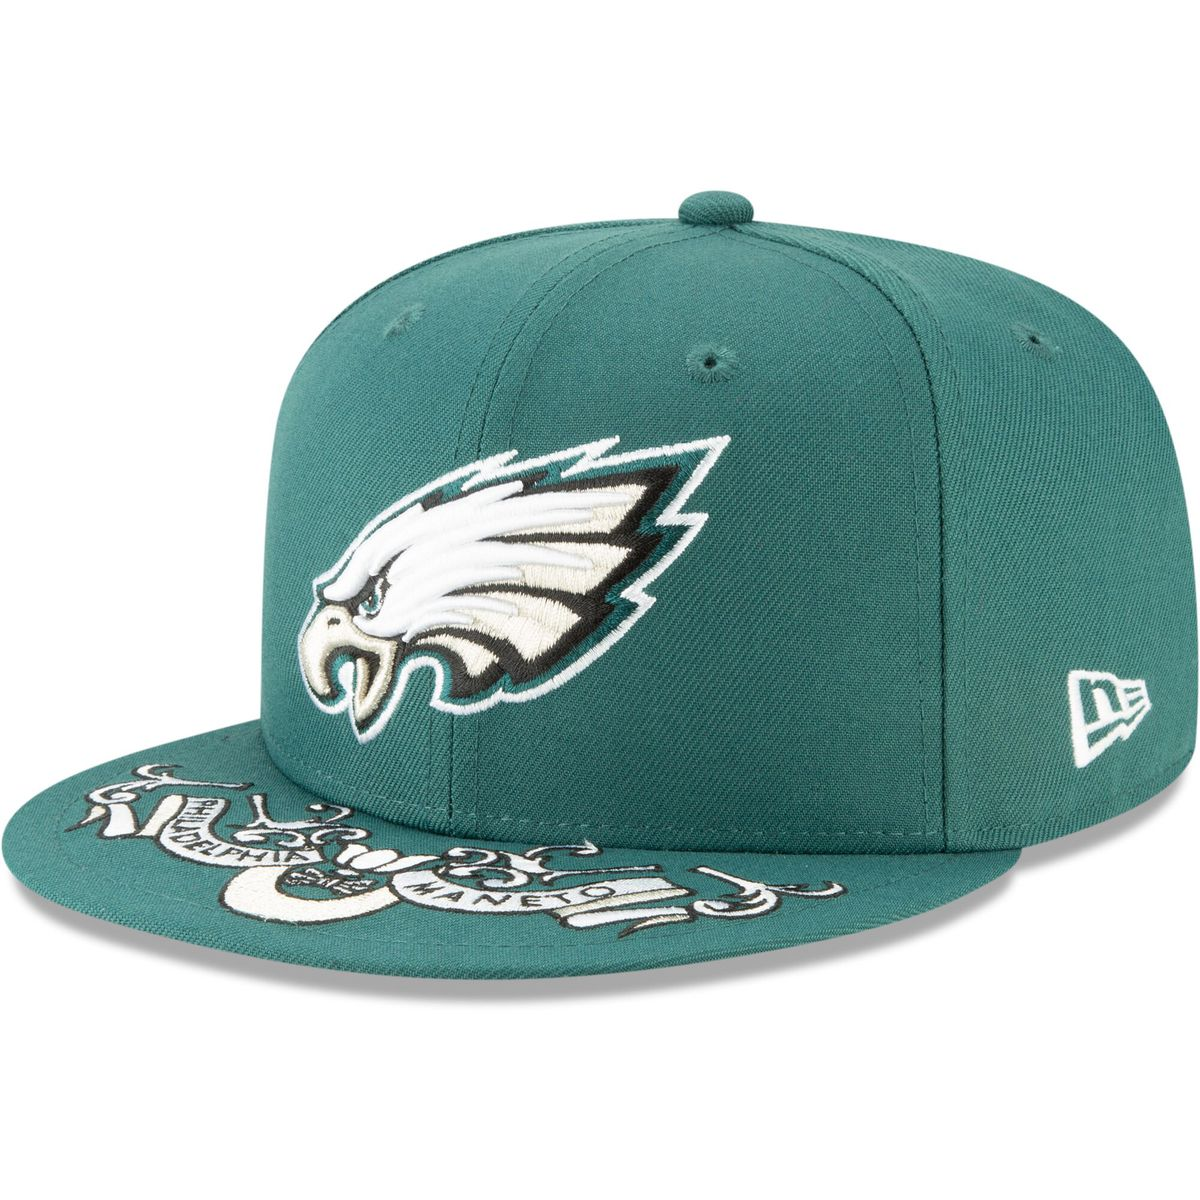 ae5b8a0589f67 Eagles 2019 NFL Draft hats are here - Bleeding Green Nation